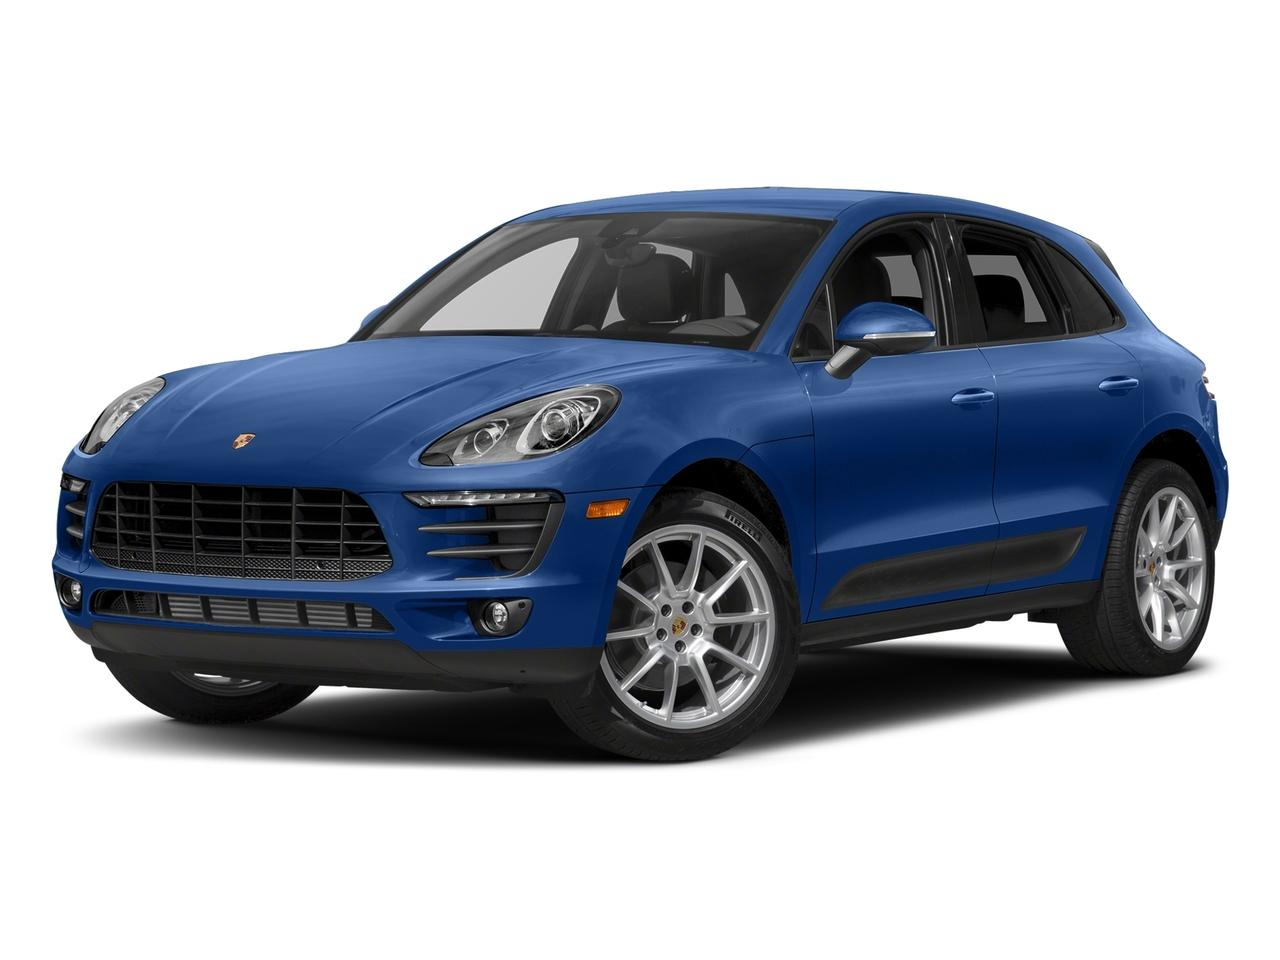 2018 Porsche Macan Vehicle Photo in Cary, NC 27511